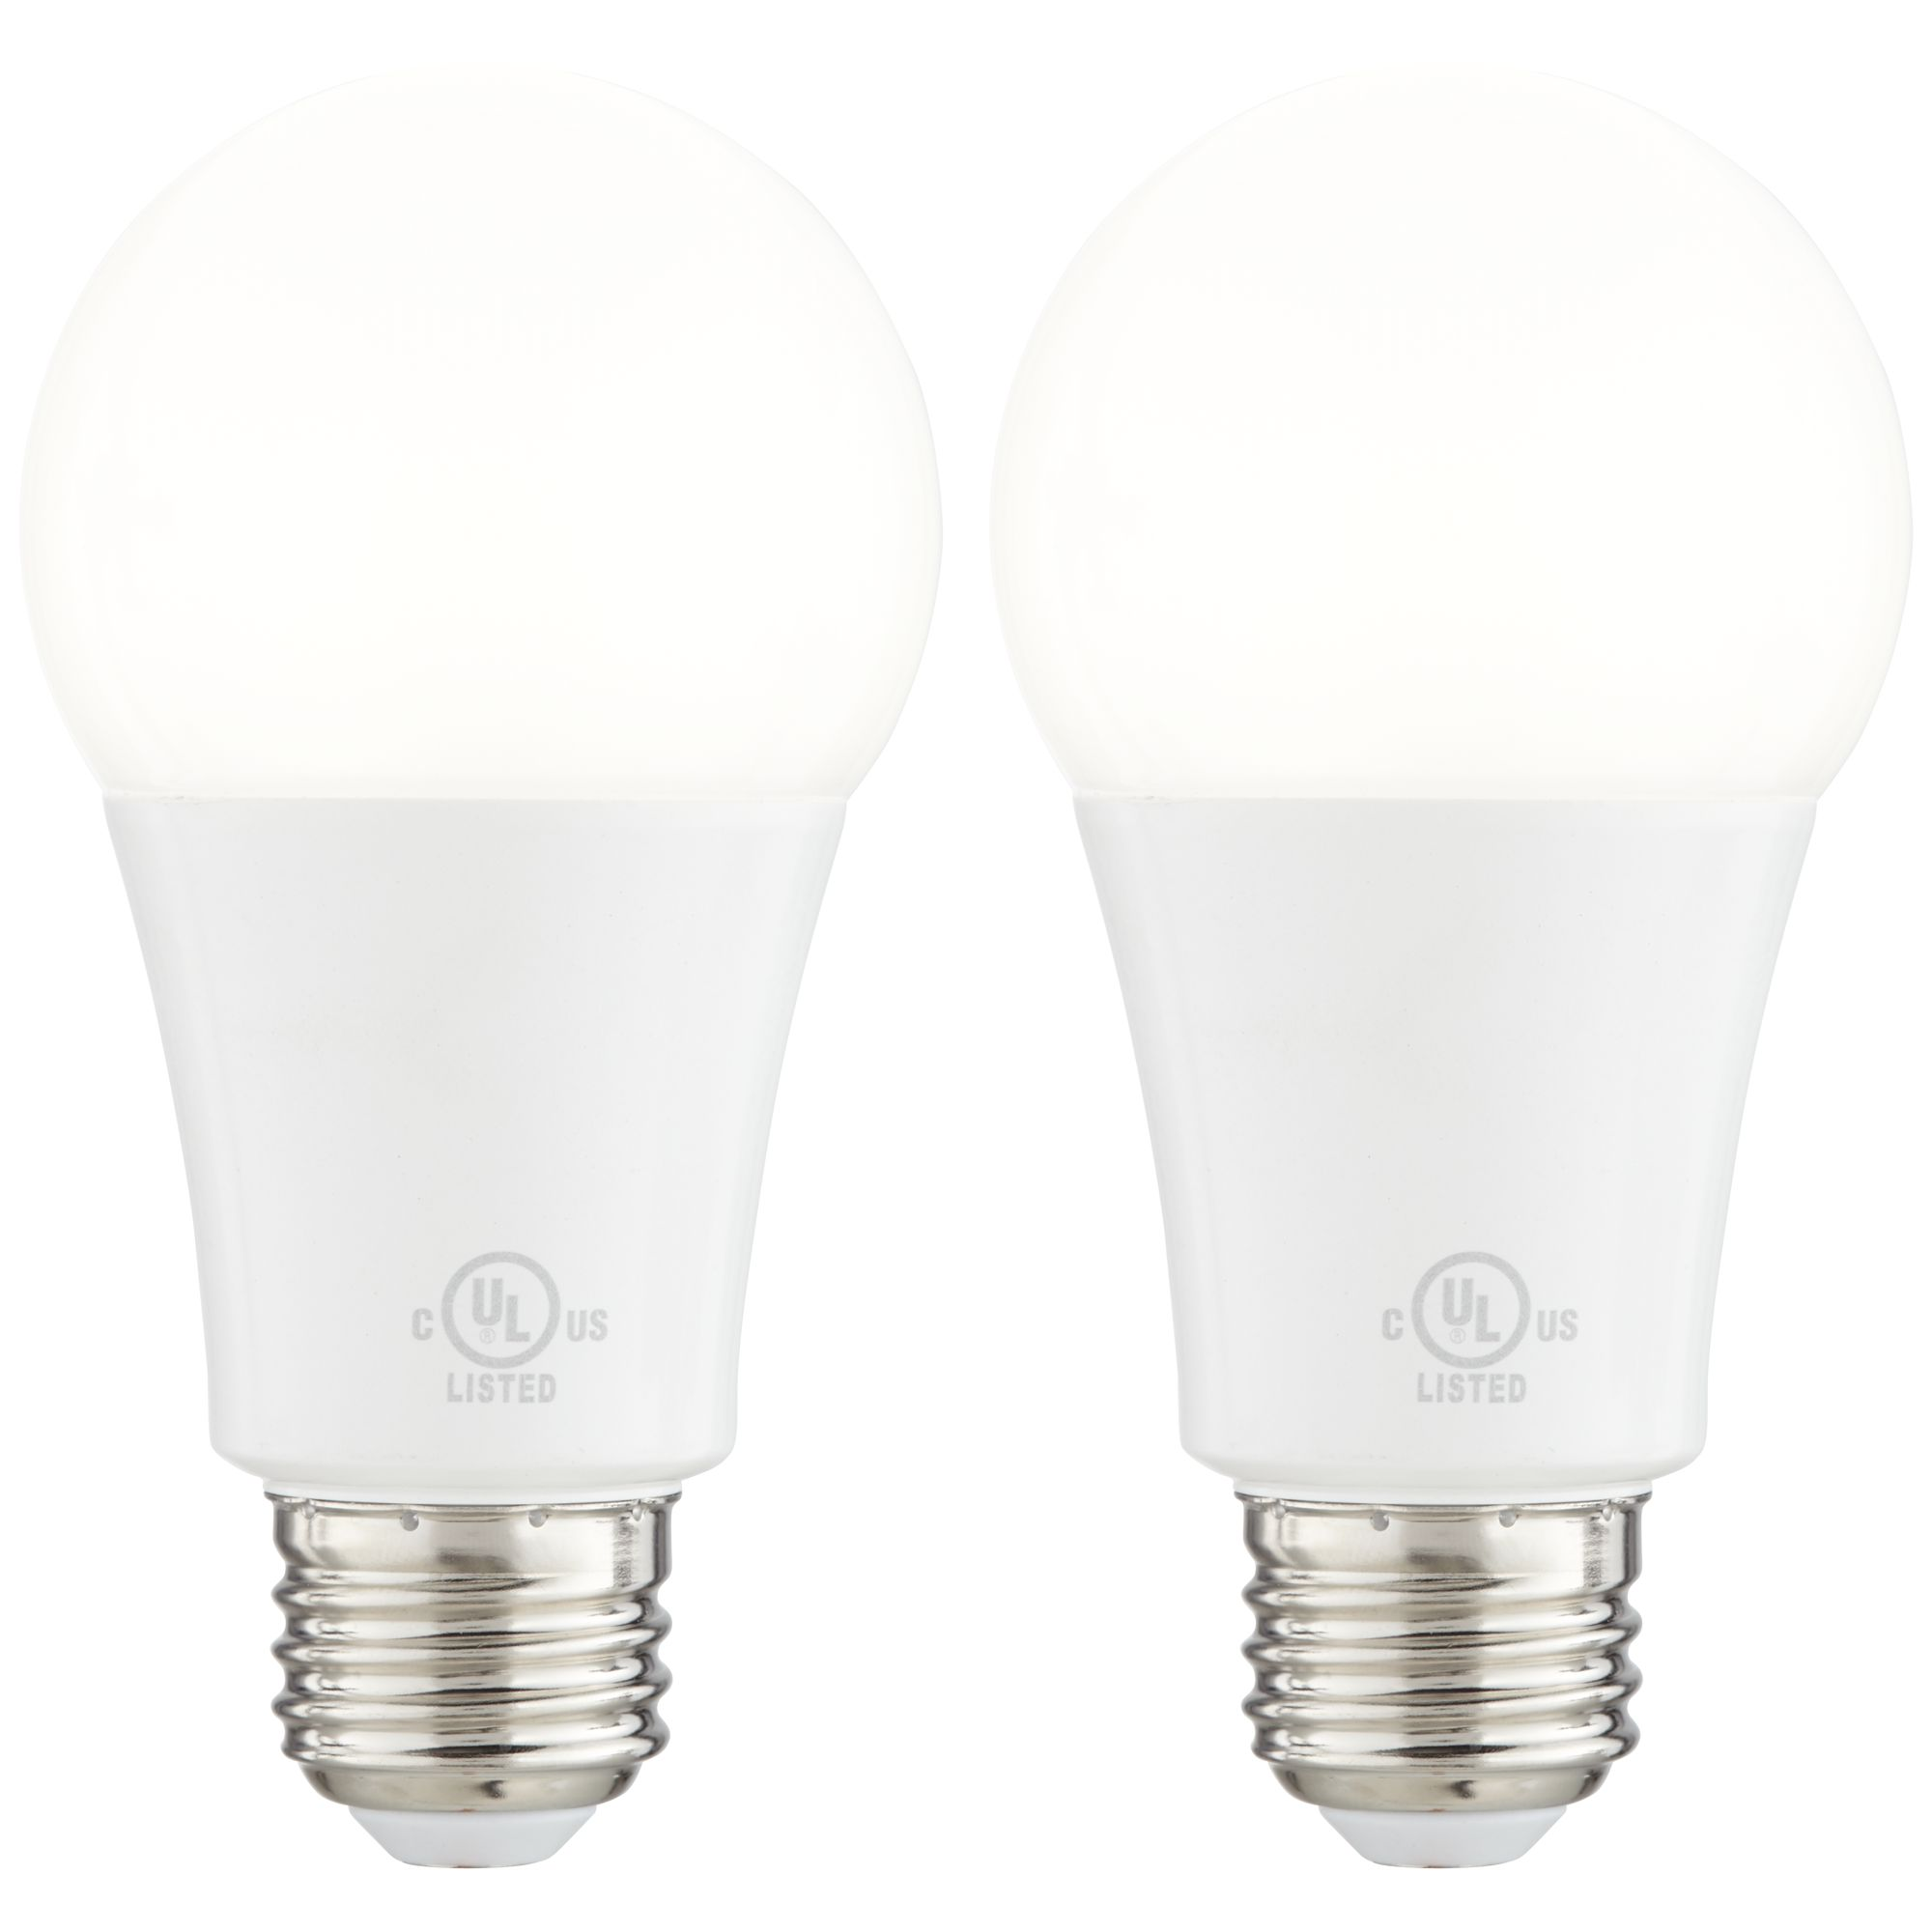 100 Watt Equivalent Tesler Frosted 16W LED Dimmable 2-Pack  sc 1 st  L&s Plus & Tesler Light Bulbs | Lamps Plus azcodes.com